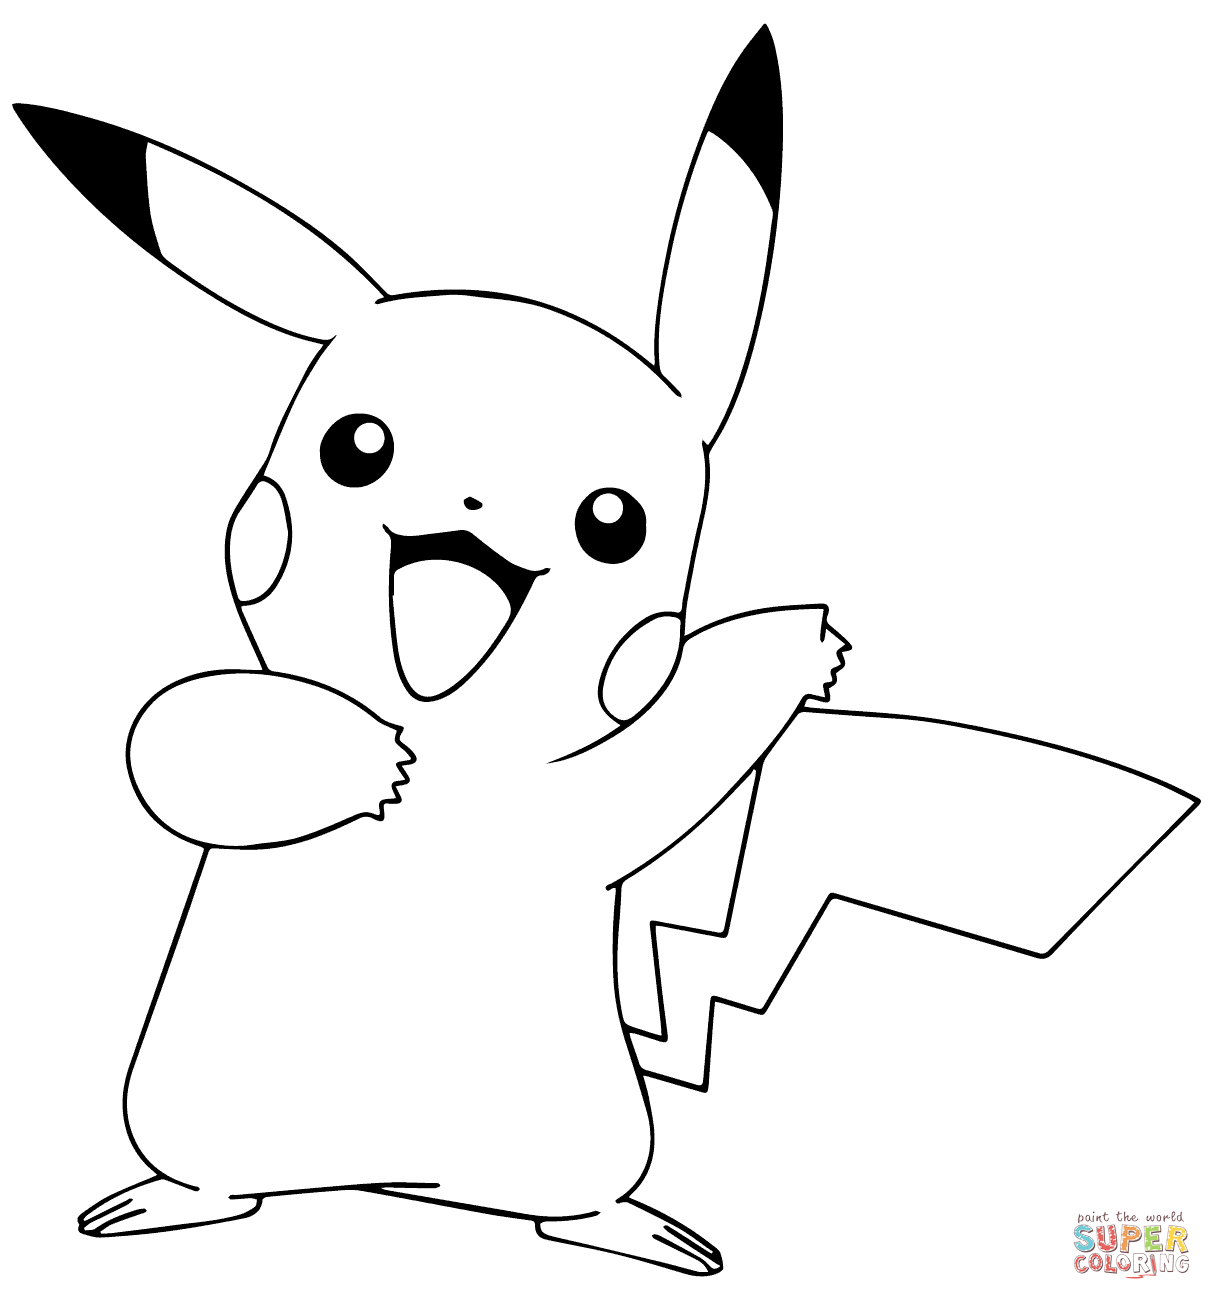 coloring pictures pikachu 30 best pikachu coloring pages visual arts ideas pikachu pictures coloring